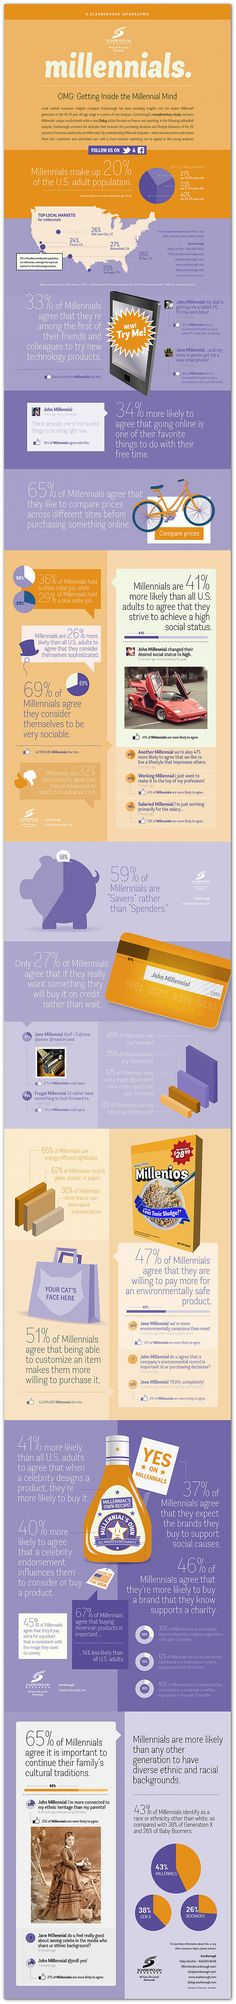 """Infographic   Inside the minds of the Generation Y known as """"Millennials"""" (those born between approx. 1982 & 2004)  They include both my daughters, some of the young professionals in your workplace and those front line professionals you interact with at restaurants, retail establishments, service providers, government and schools."""